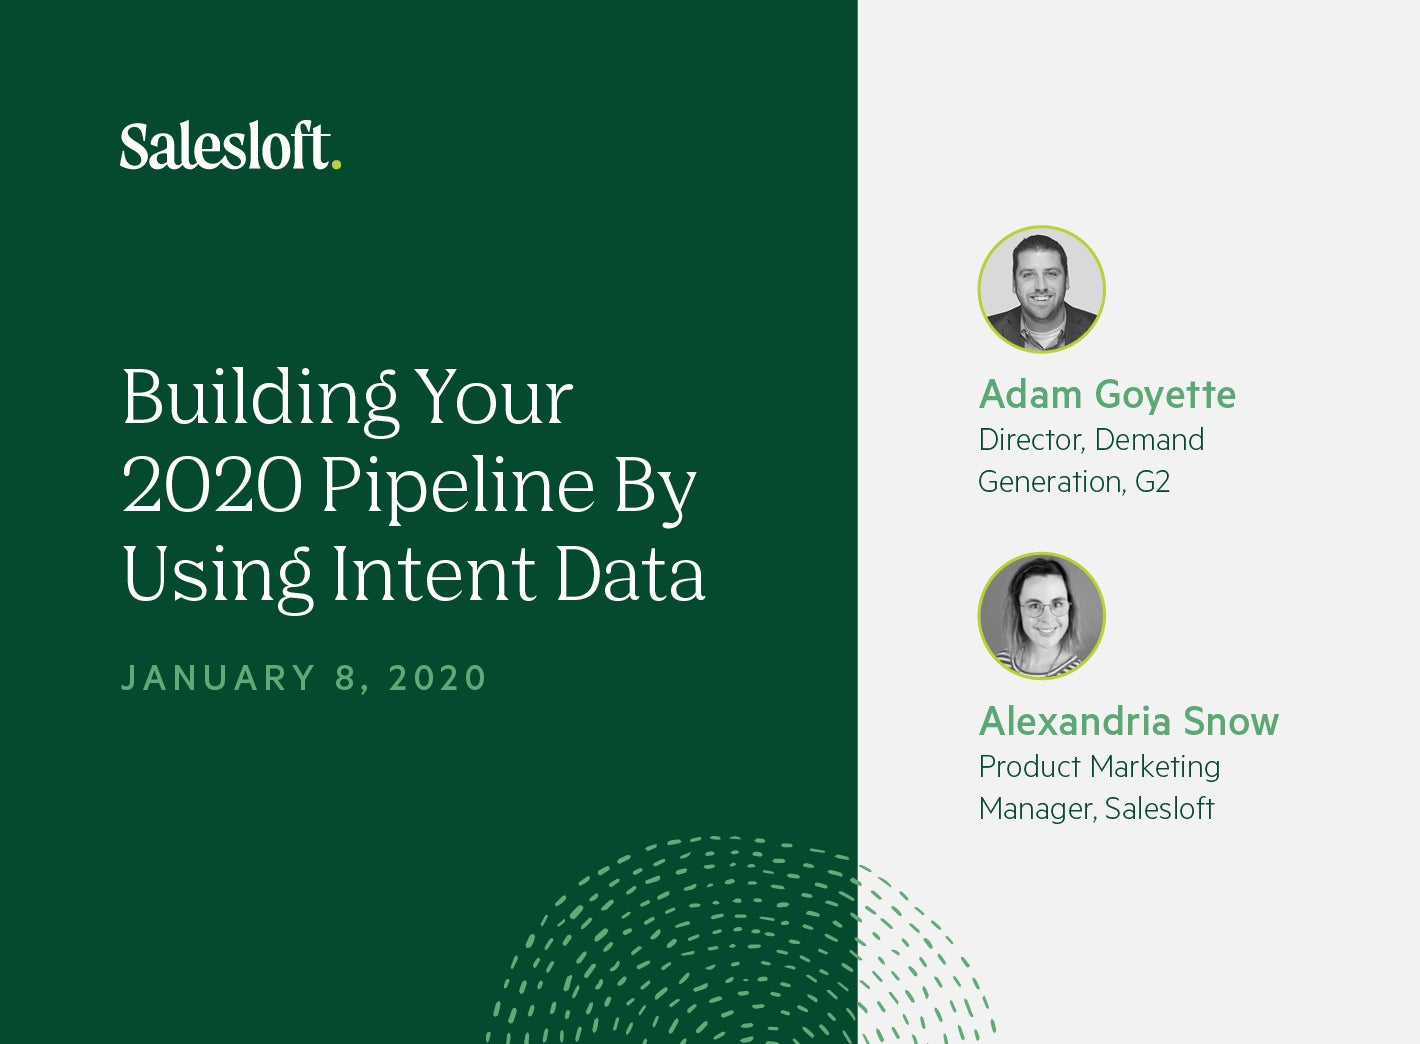 Building Your 2020 Pipeline By Using Intent Data